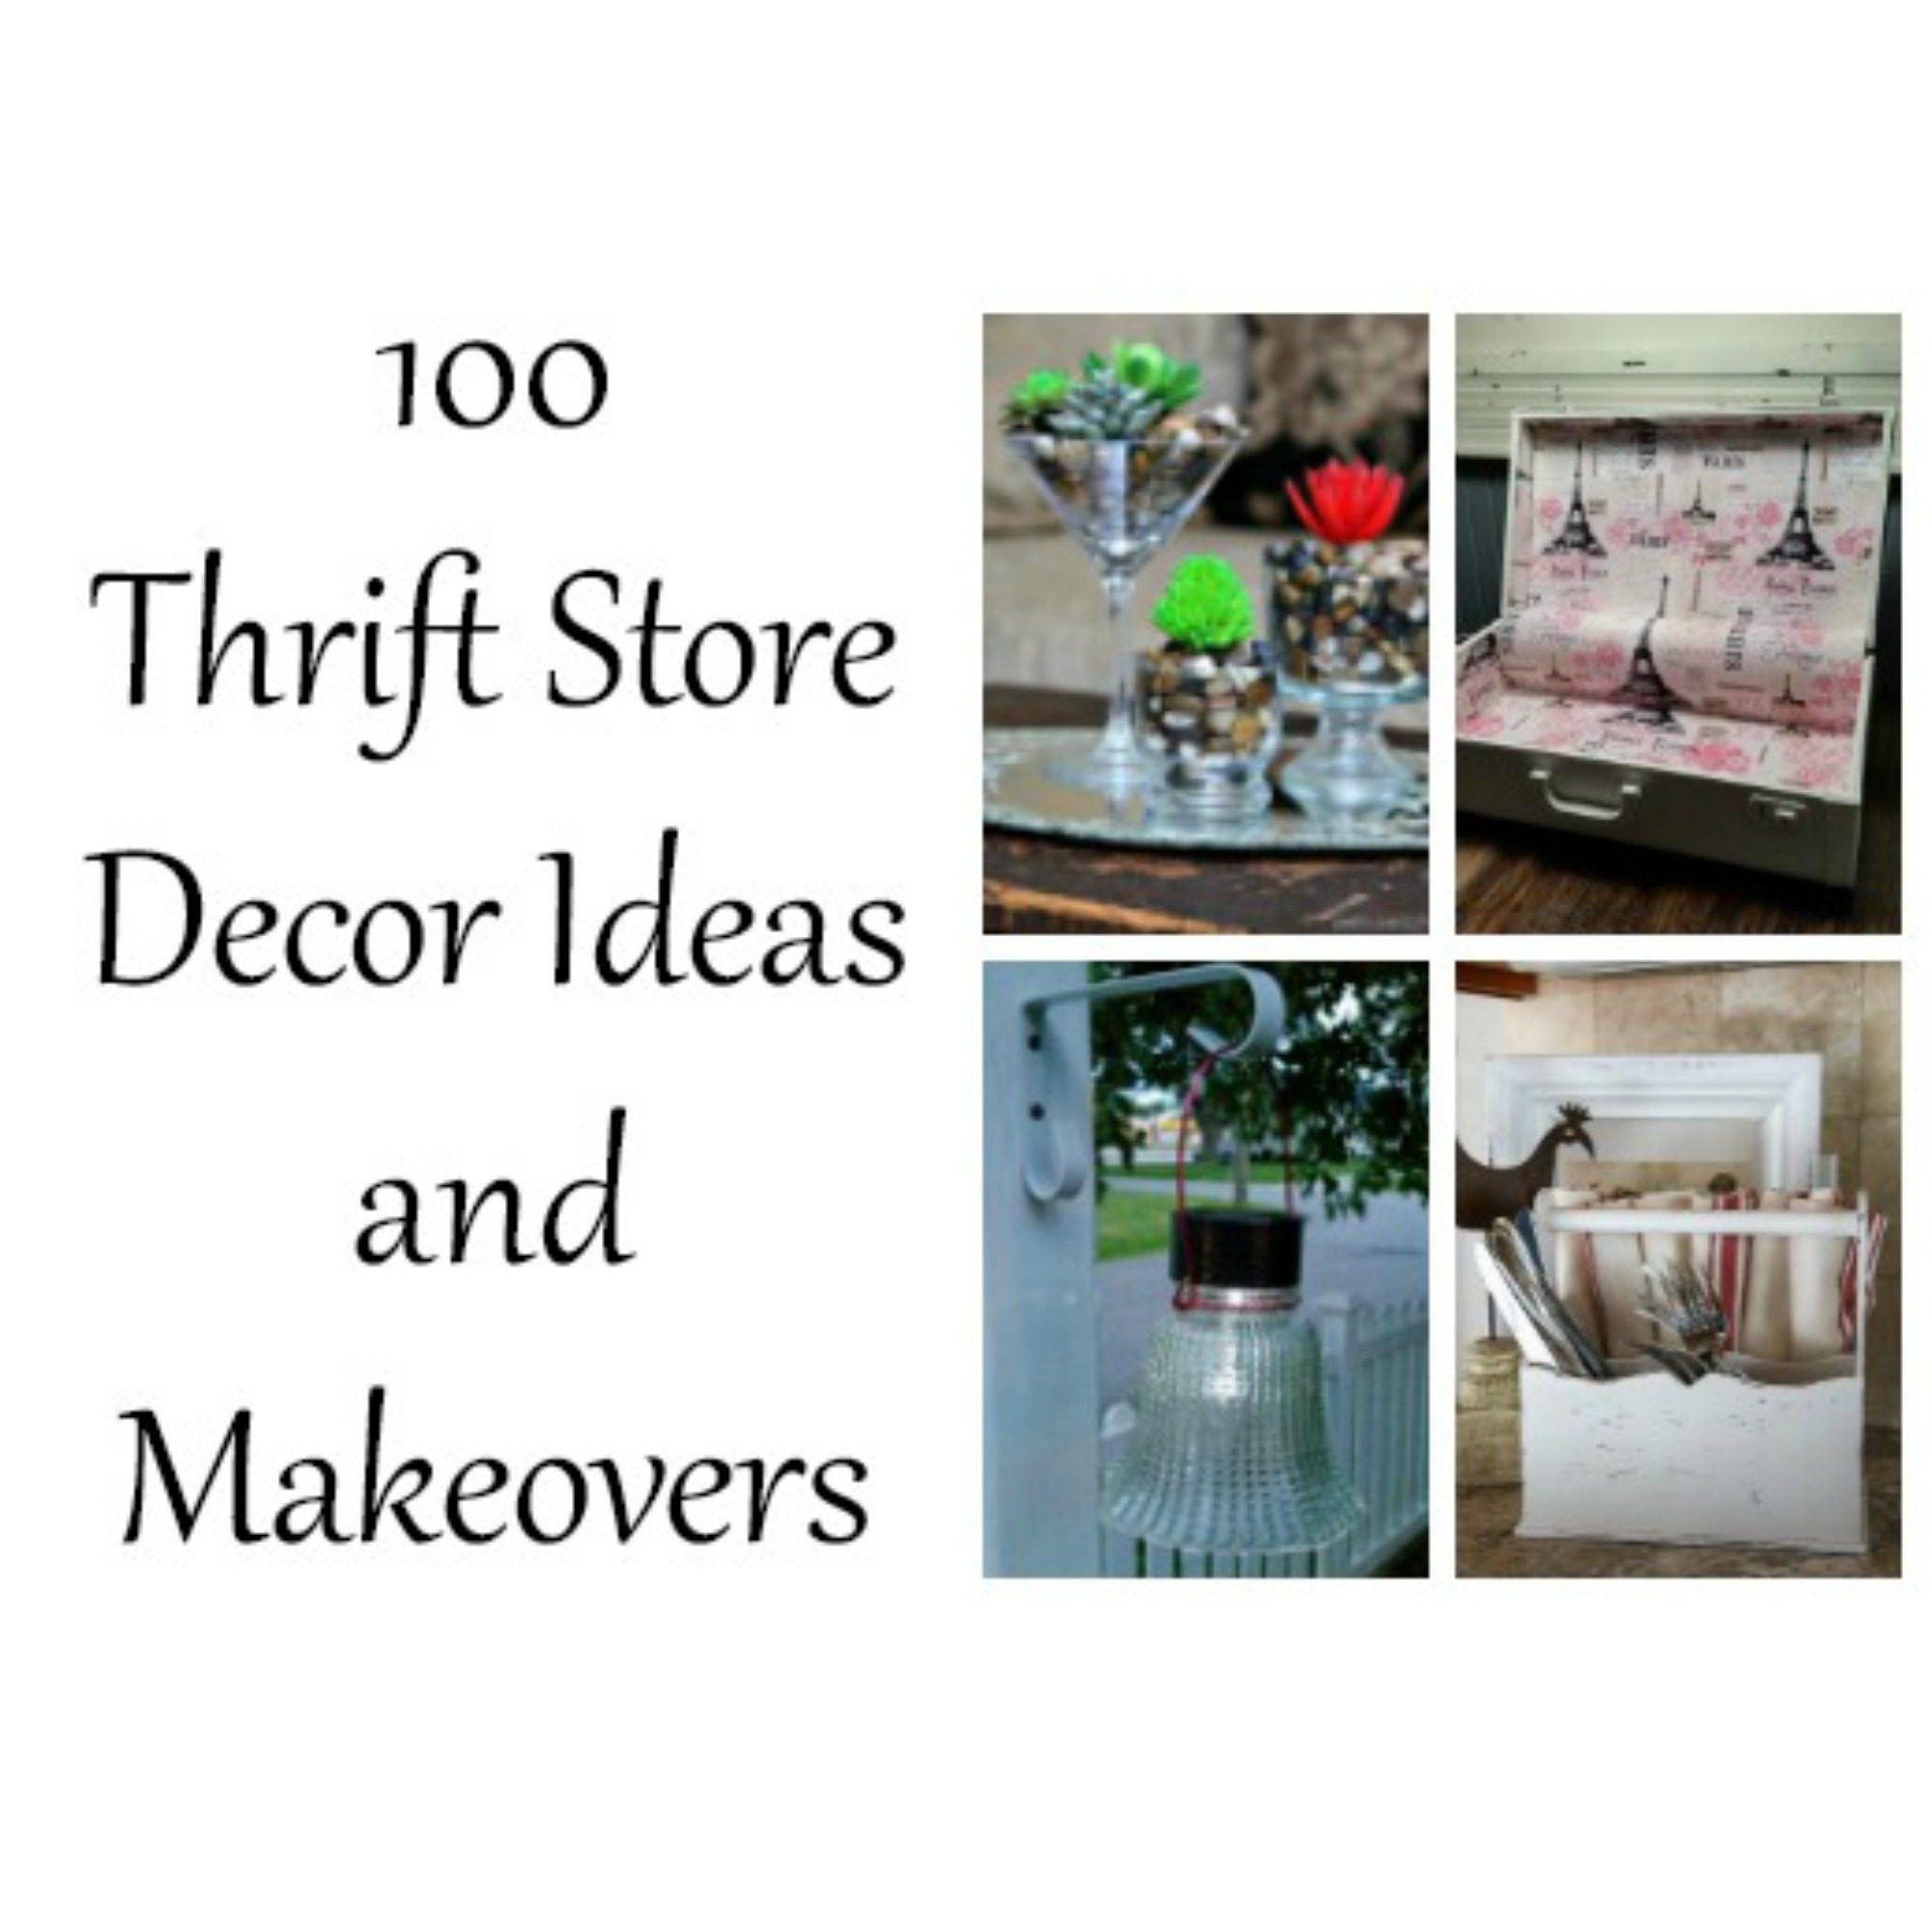 Thrifty Blogs On Home Decor: My Repurposed Life®